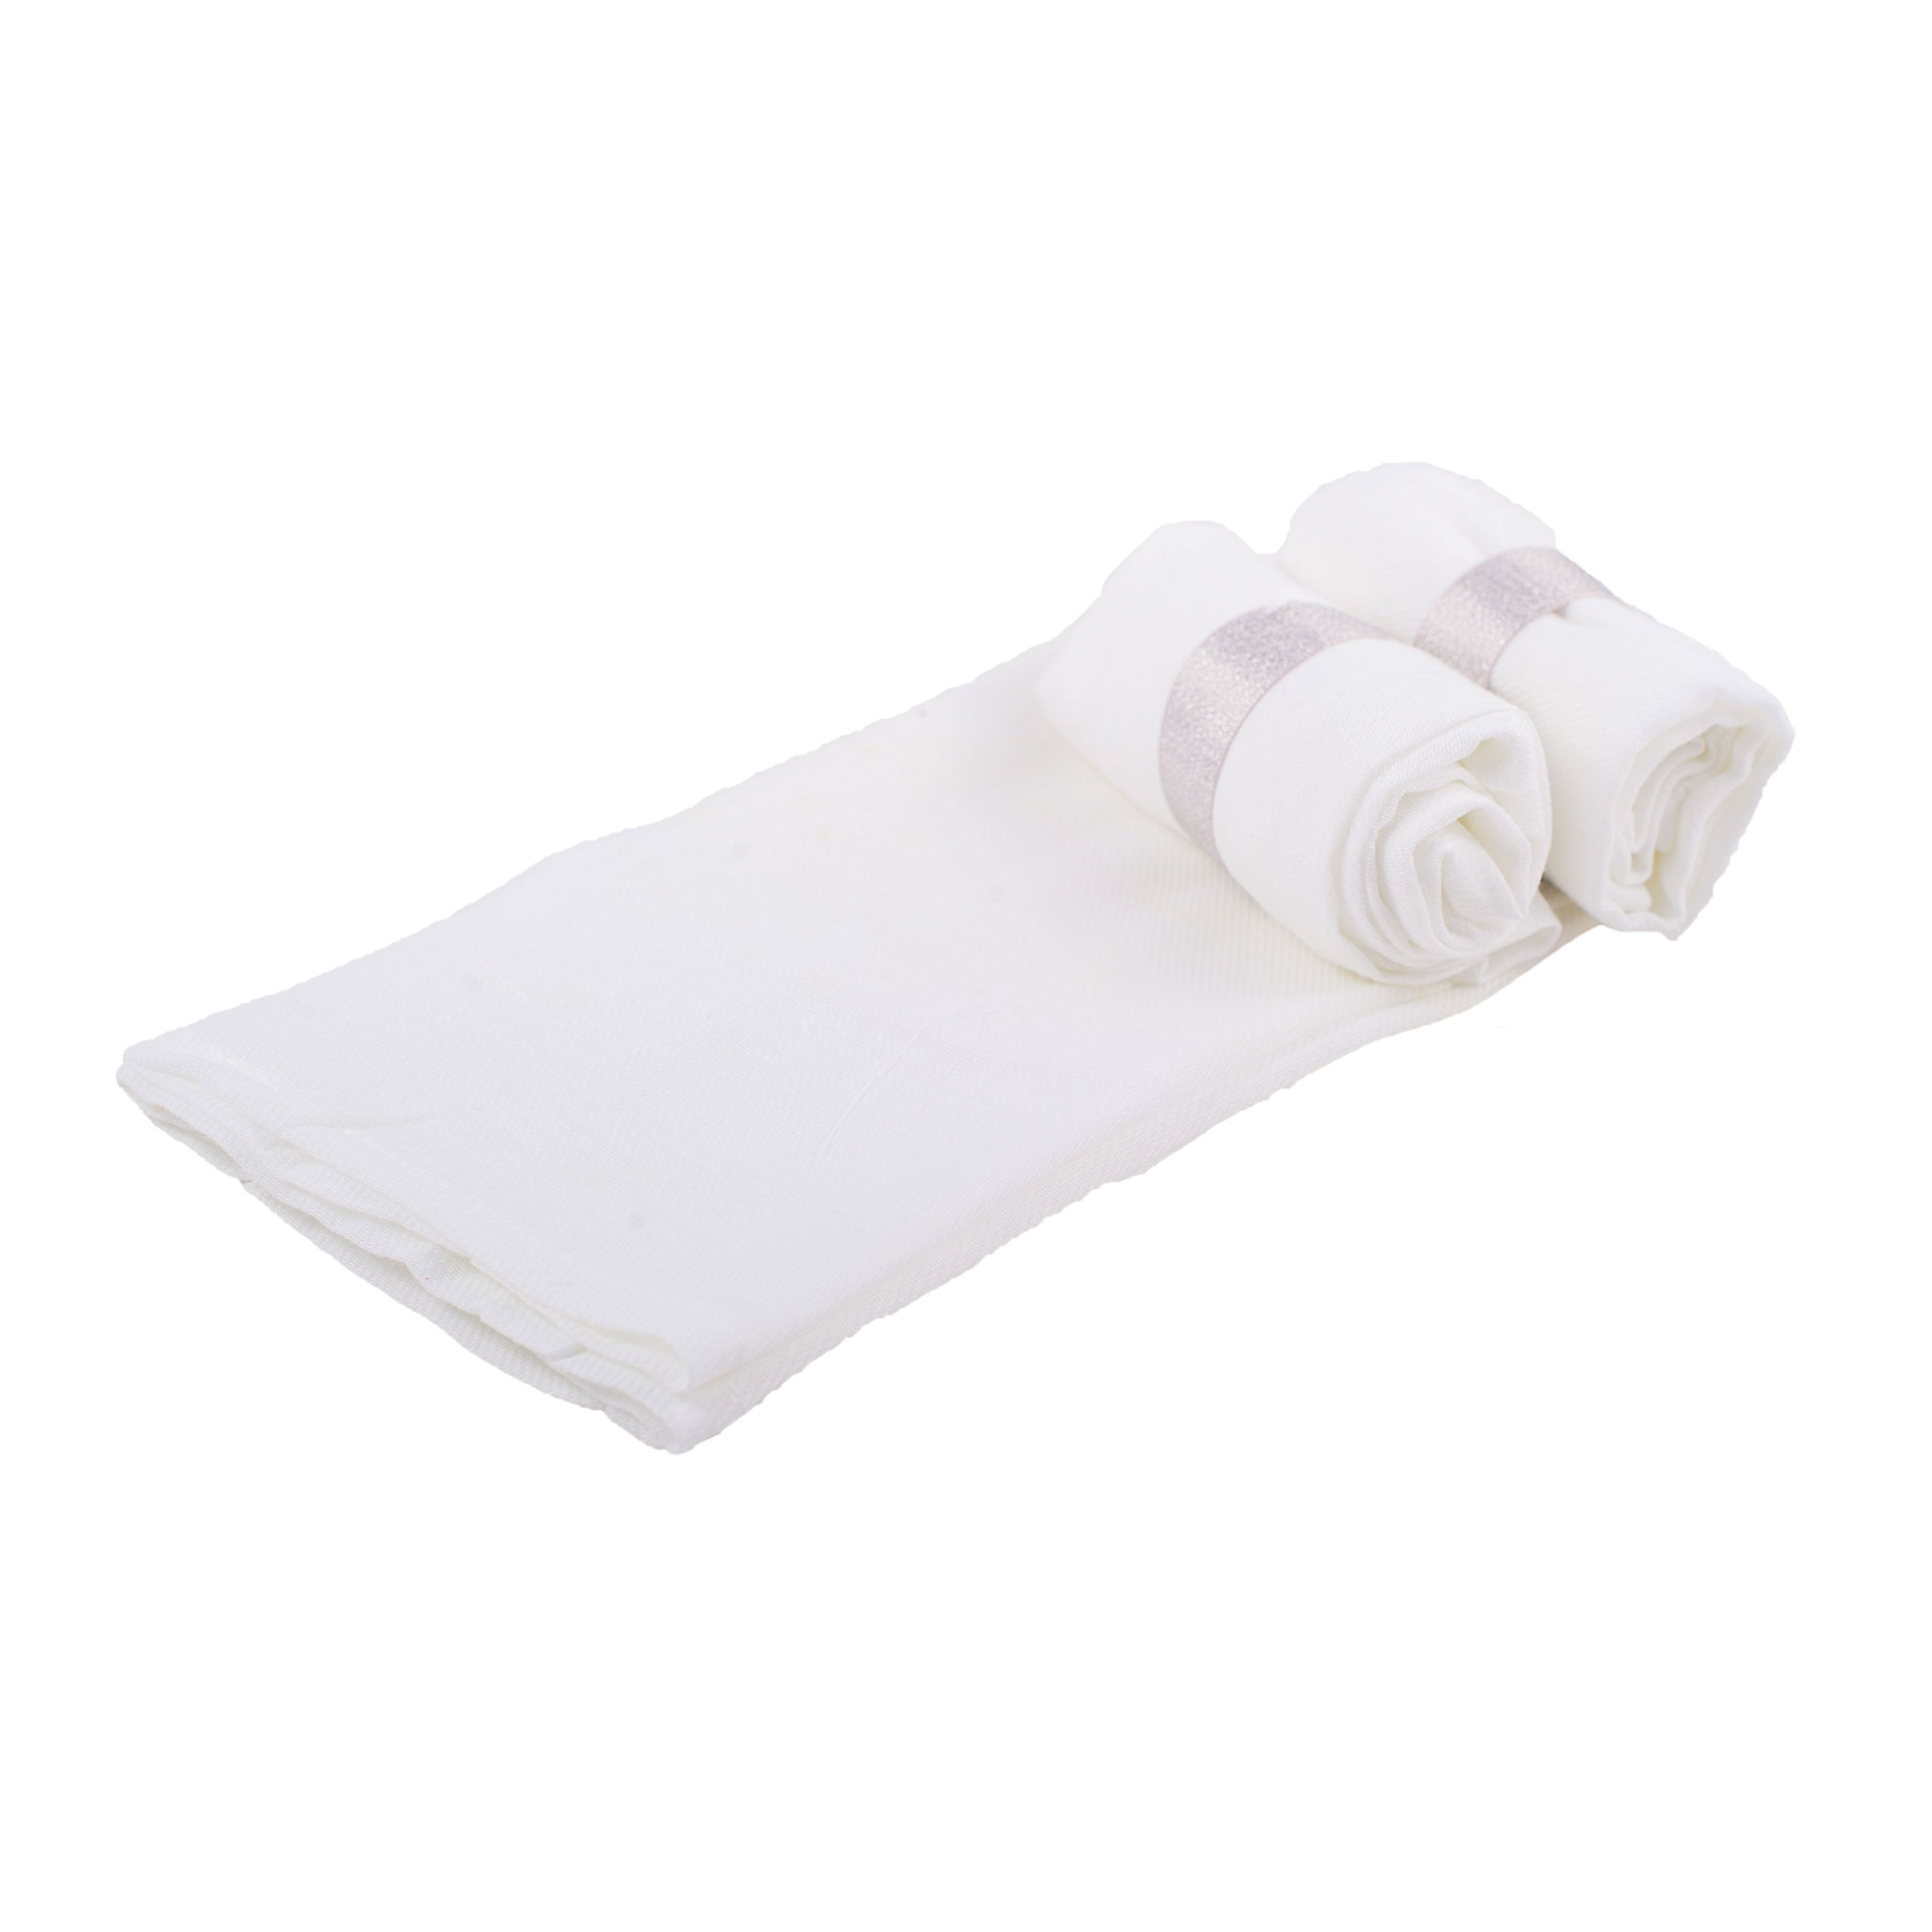 Muslin Squares x 12 - White